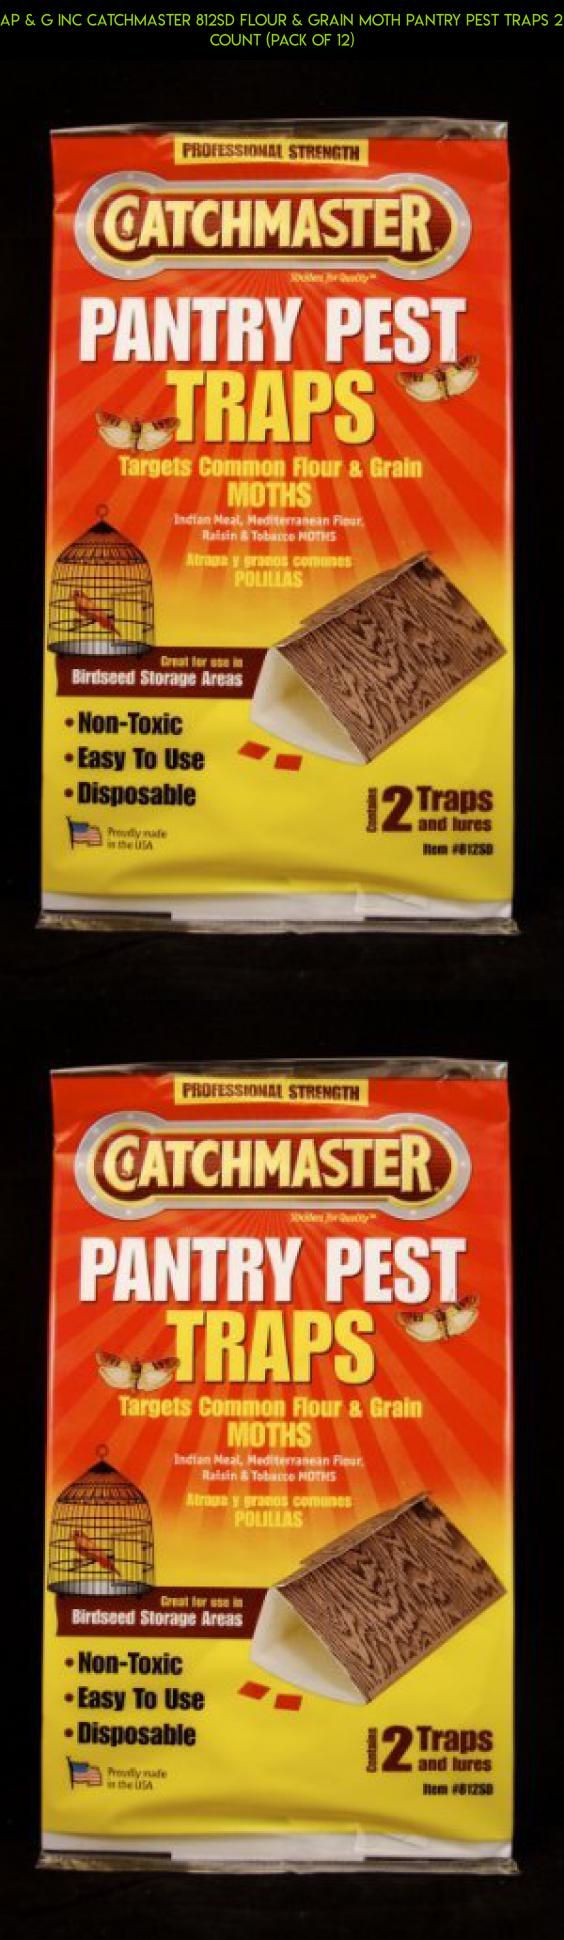 Ap & G Inc Catchmaster 812sd Flour & Grain Moth Pantry Pest Traps 2 Count (Pack of 12) #g #gadgets #fpv #tech #plans #shopping #technology #products #racing #drone #kit #parts #storage #camera